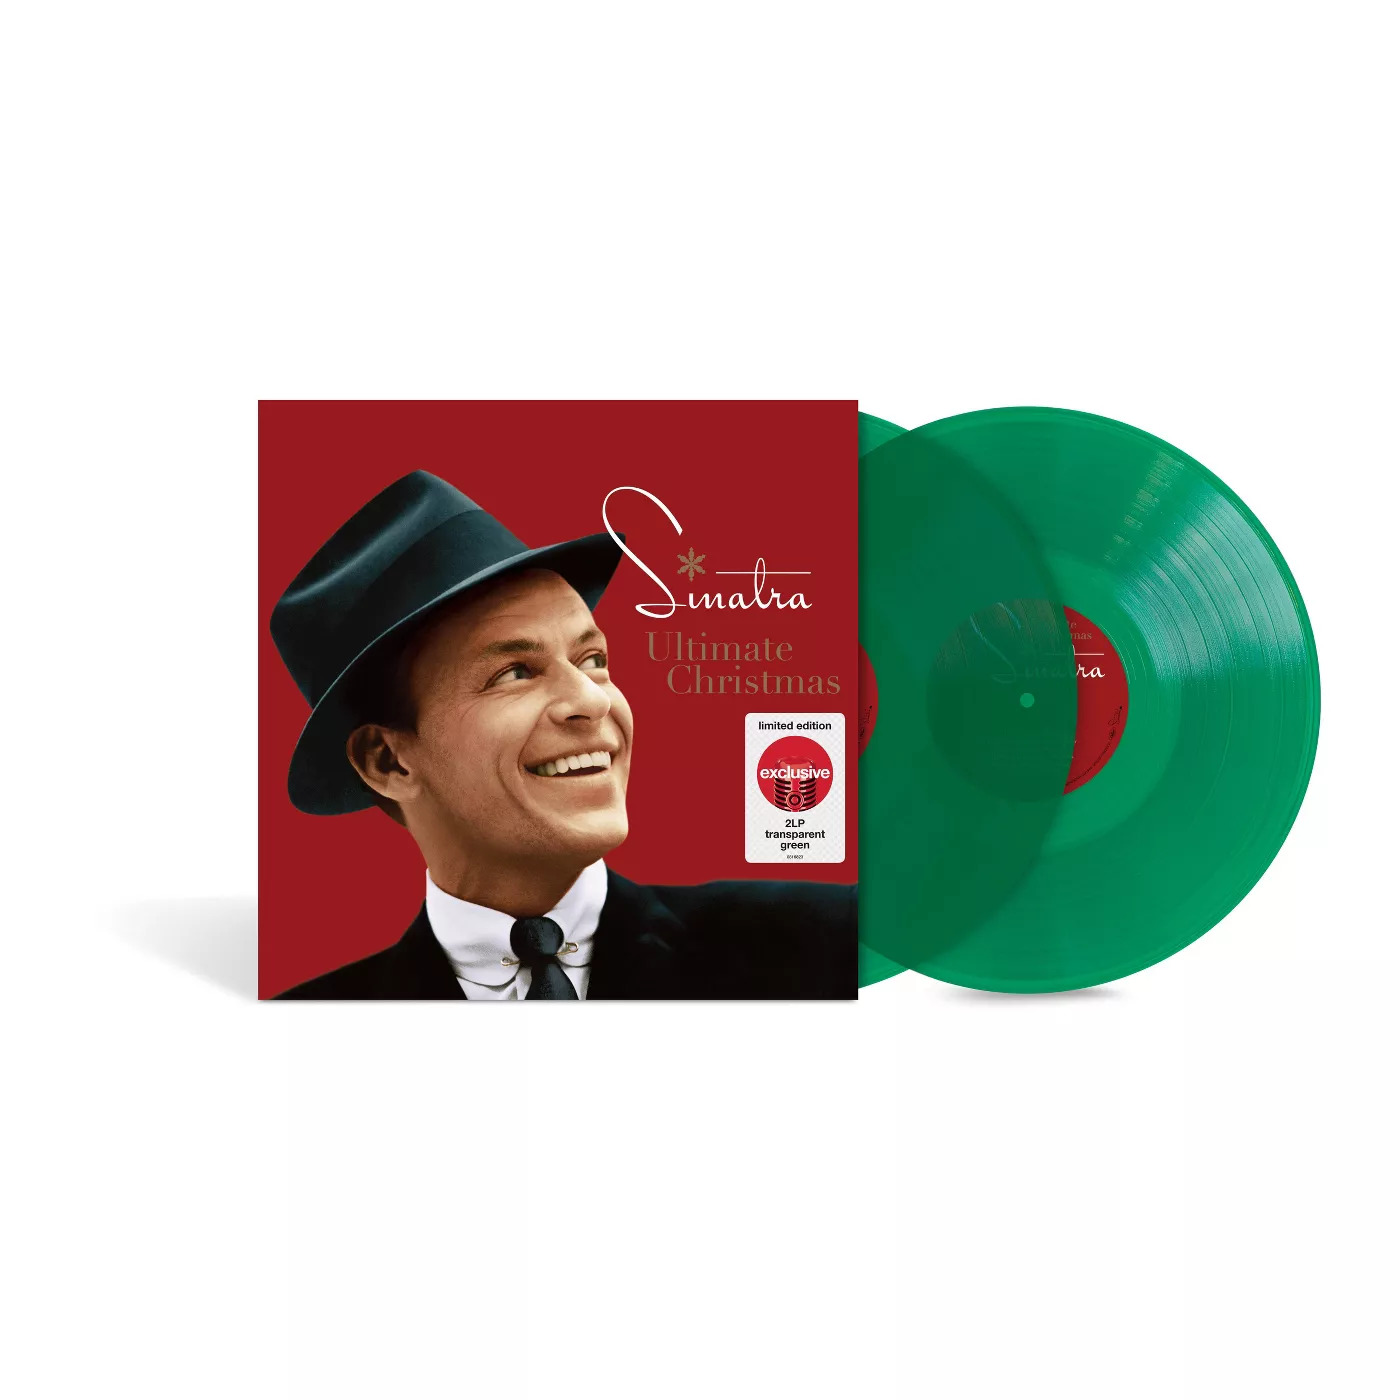 Frank Sinatra Ultimate Christmas Target Exclusive